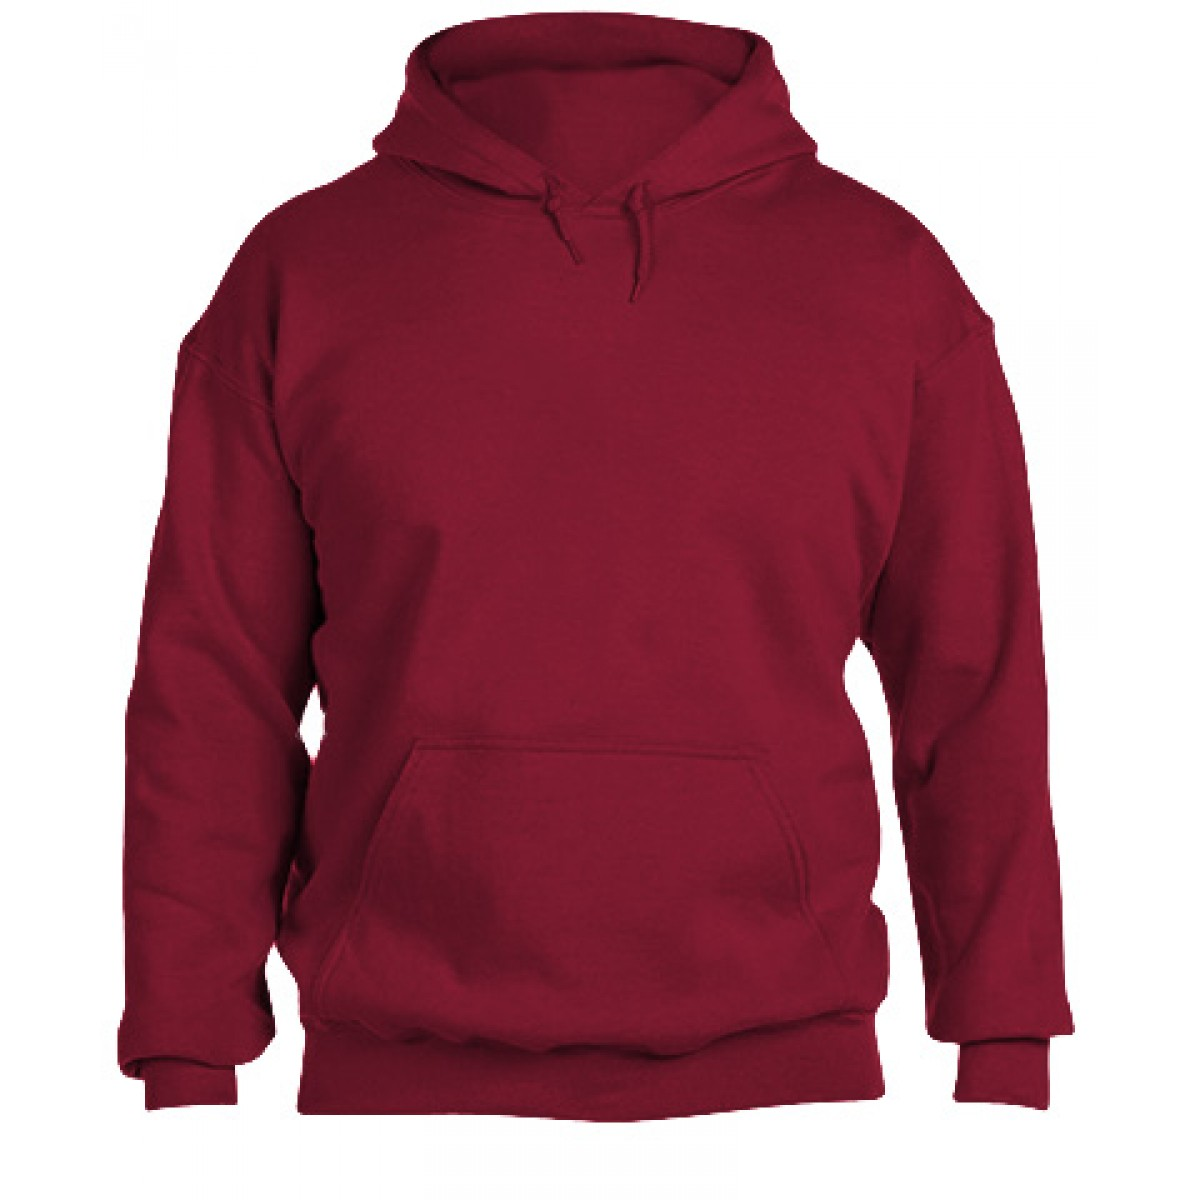 Hooded Sweatshirt 50/50 Heavy Blend -Cardinal Red-S